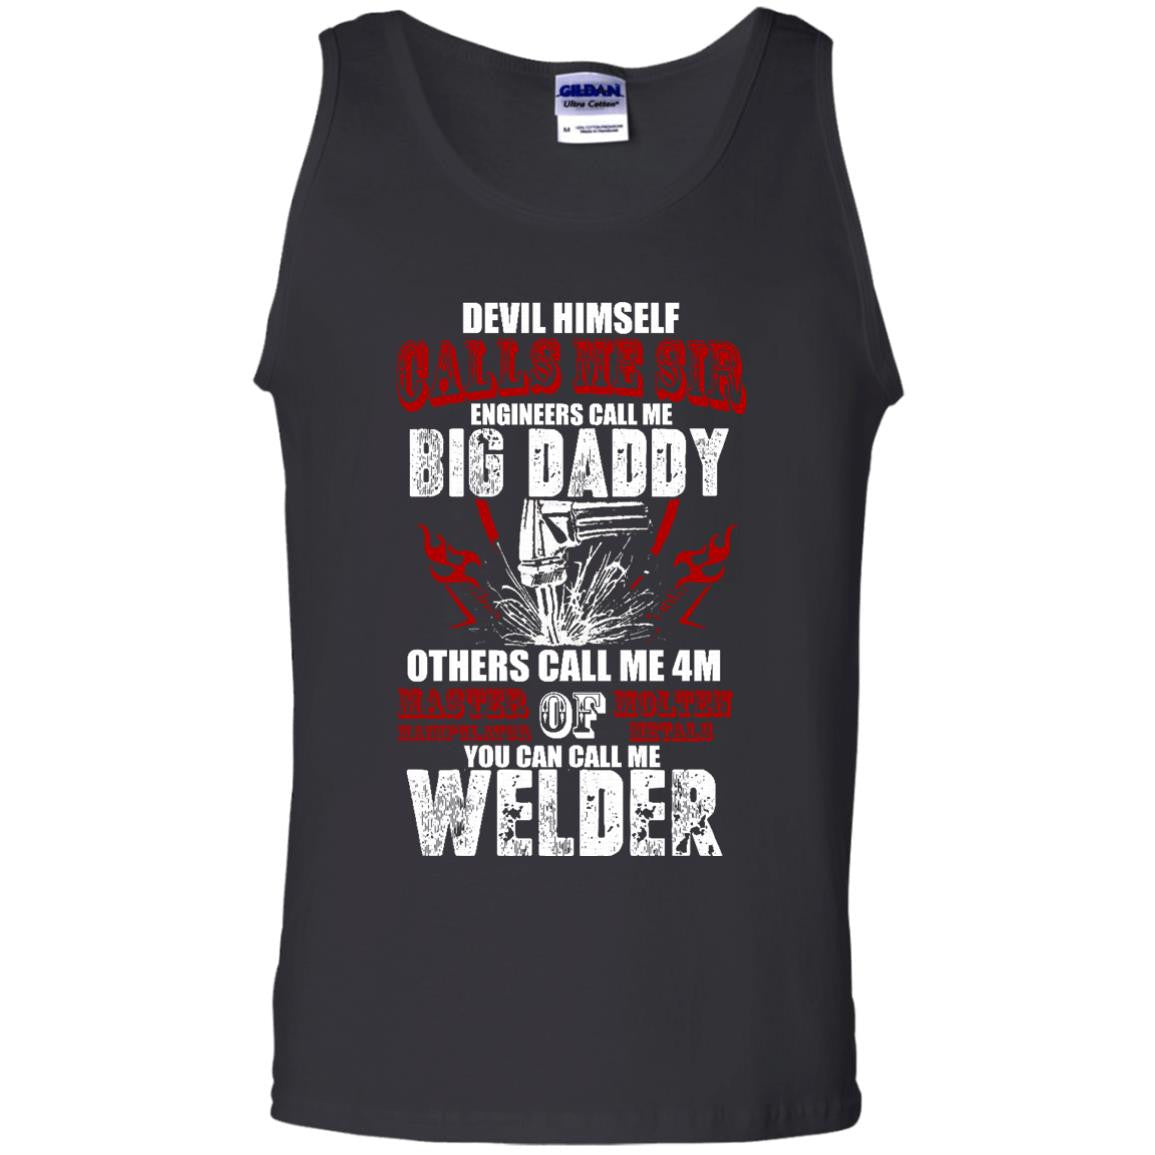 The Devil Himself Calls Me Sir, You Can Call Me Welder Tank Top